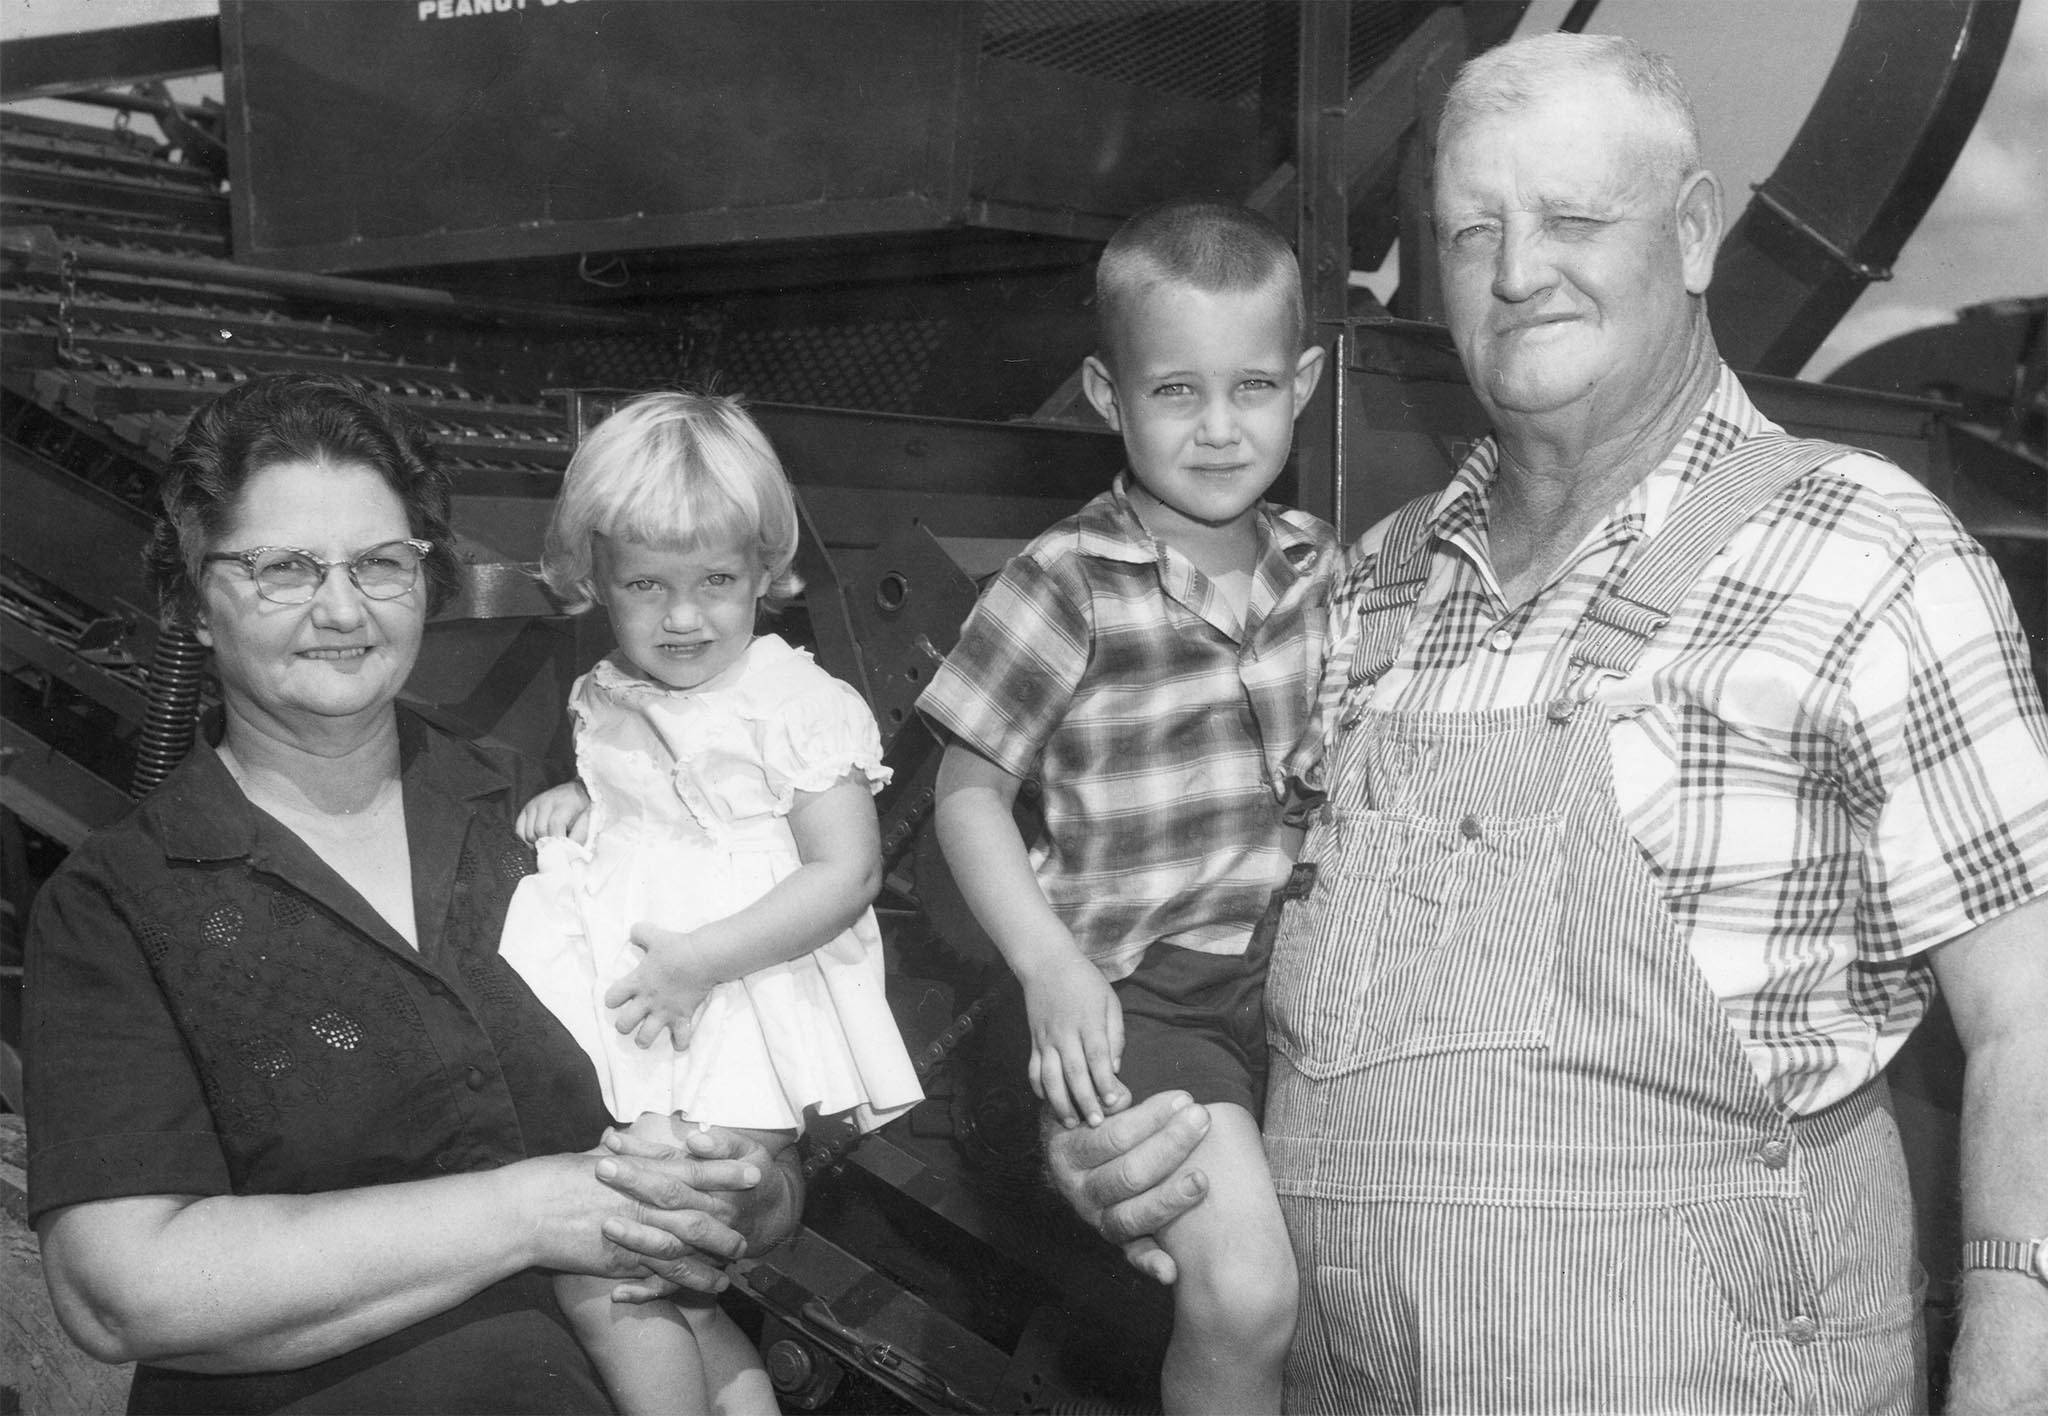 For the 1963 Farm Family award, the OKFB Women designed the contest to honor the state's pioneer farm families who fought floods, dust bowl days, and the depression in order to remain on the farm. One of the requirements was that the family, or the family's parents, must have farmed in Oklahoma prior to 1900. The George Lasley family from Eakley was the winner of this special Oklahoma Pioneer Farm Family of the Year award. Both of the Lasleys' parents originally came to Oklahoma in covered wagons in 1899. In the photo is Mr. and Mrs. Lasley, with the two youngest of their eight grandchildren, Gay and Lloyd.